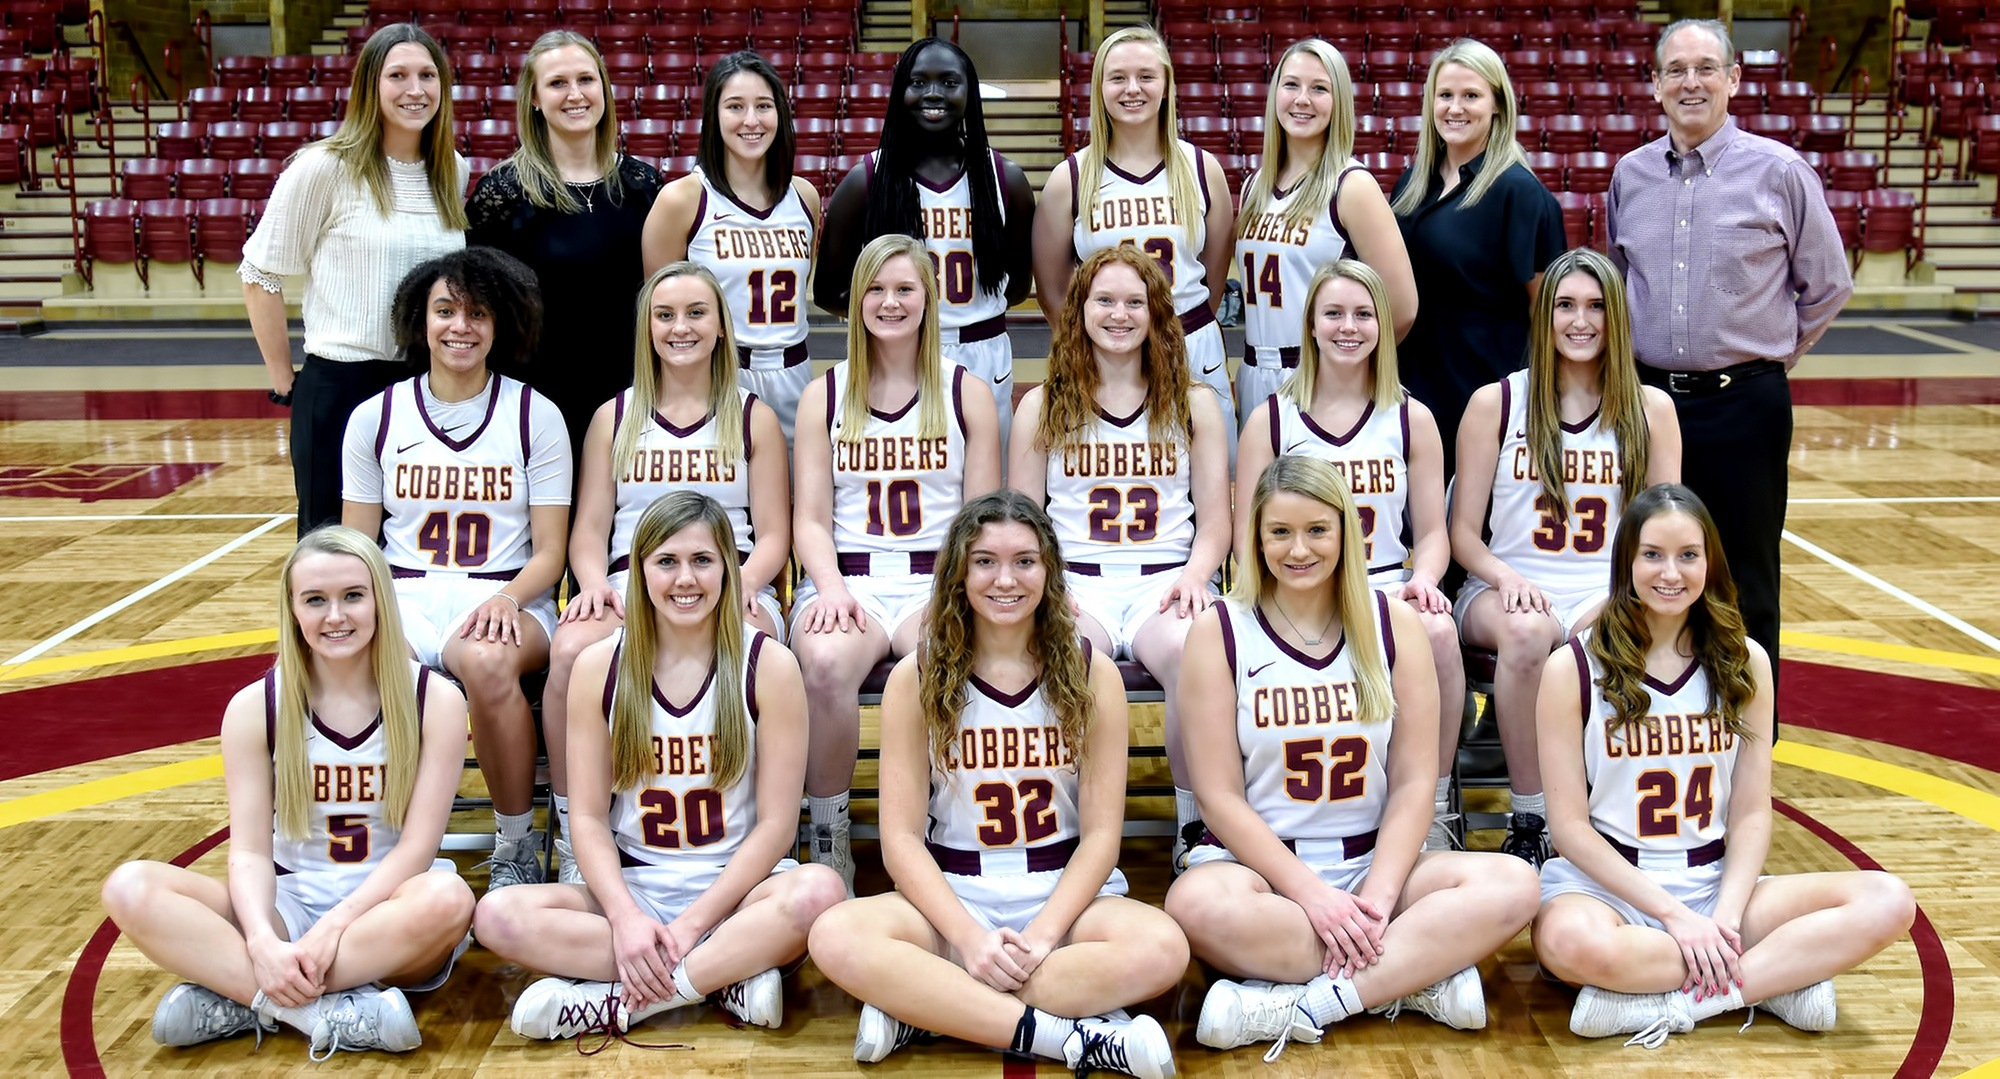 The 2020 Cobber women's basketball team